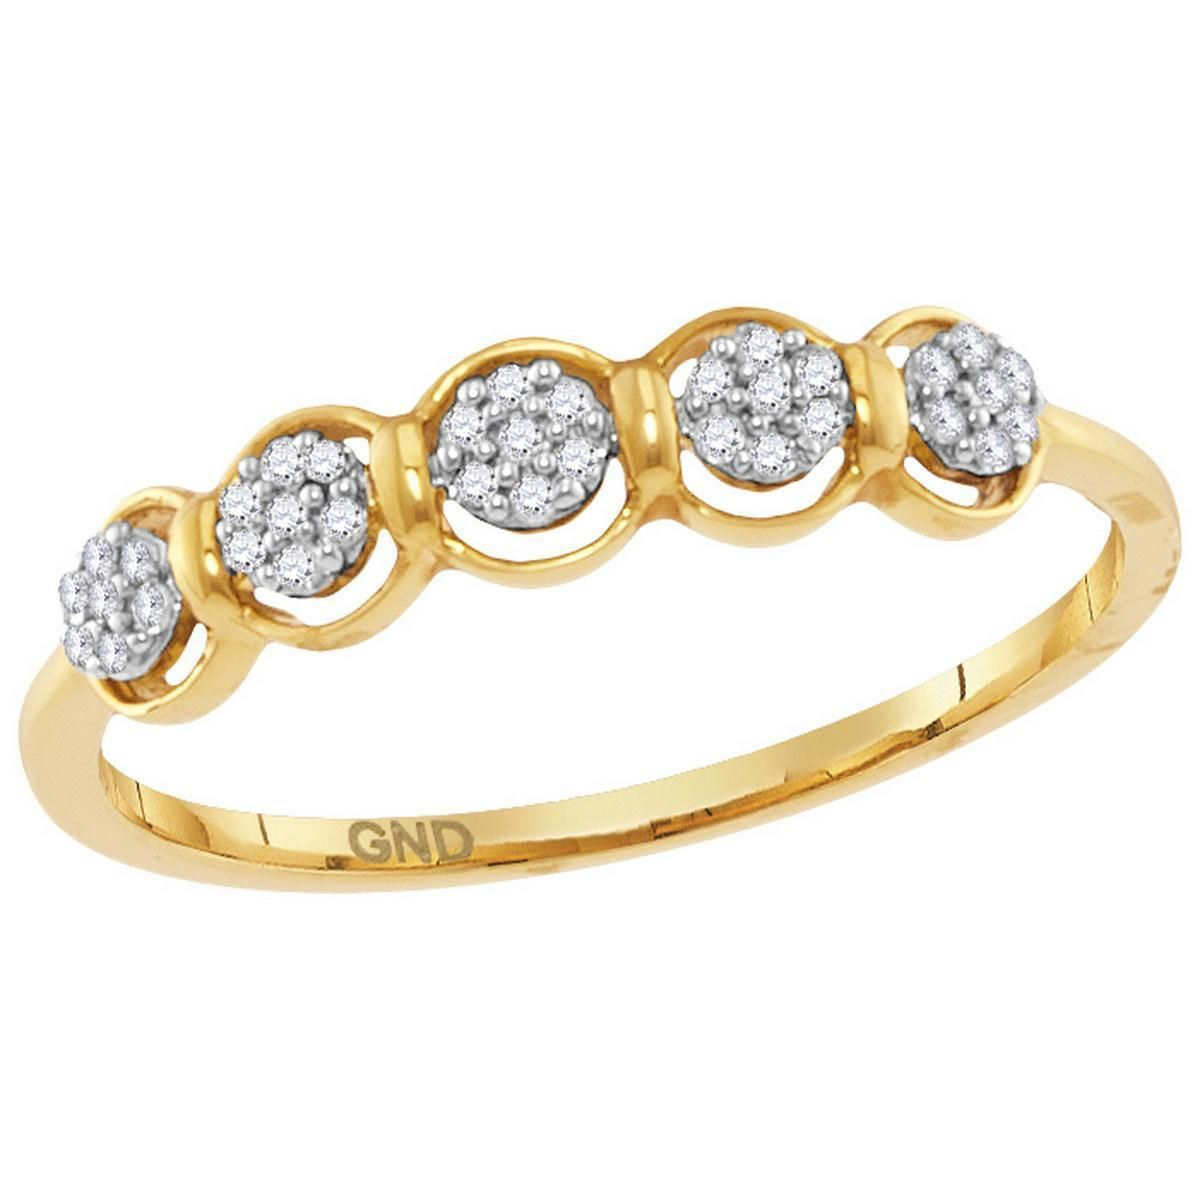 10kt Yellow Gold Women S Round Diamond Cluster Ring 1 10 Cttw Free Shipping Us Can Diamond Cluster Ring Diamond Cluster Yellow Diamond